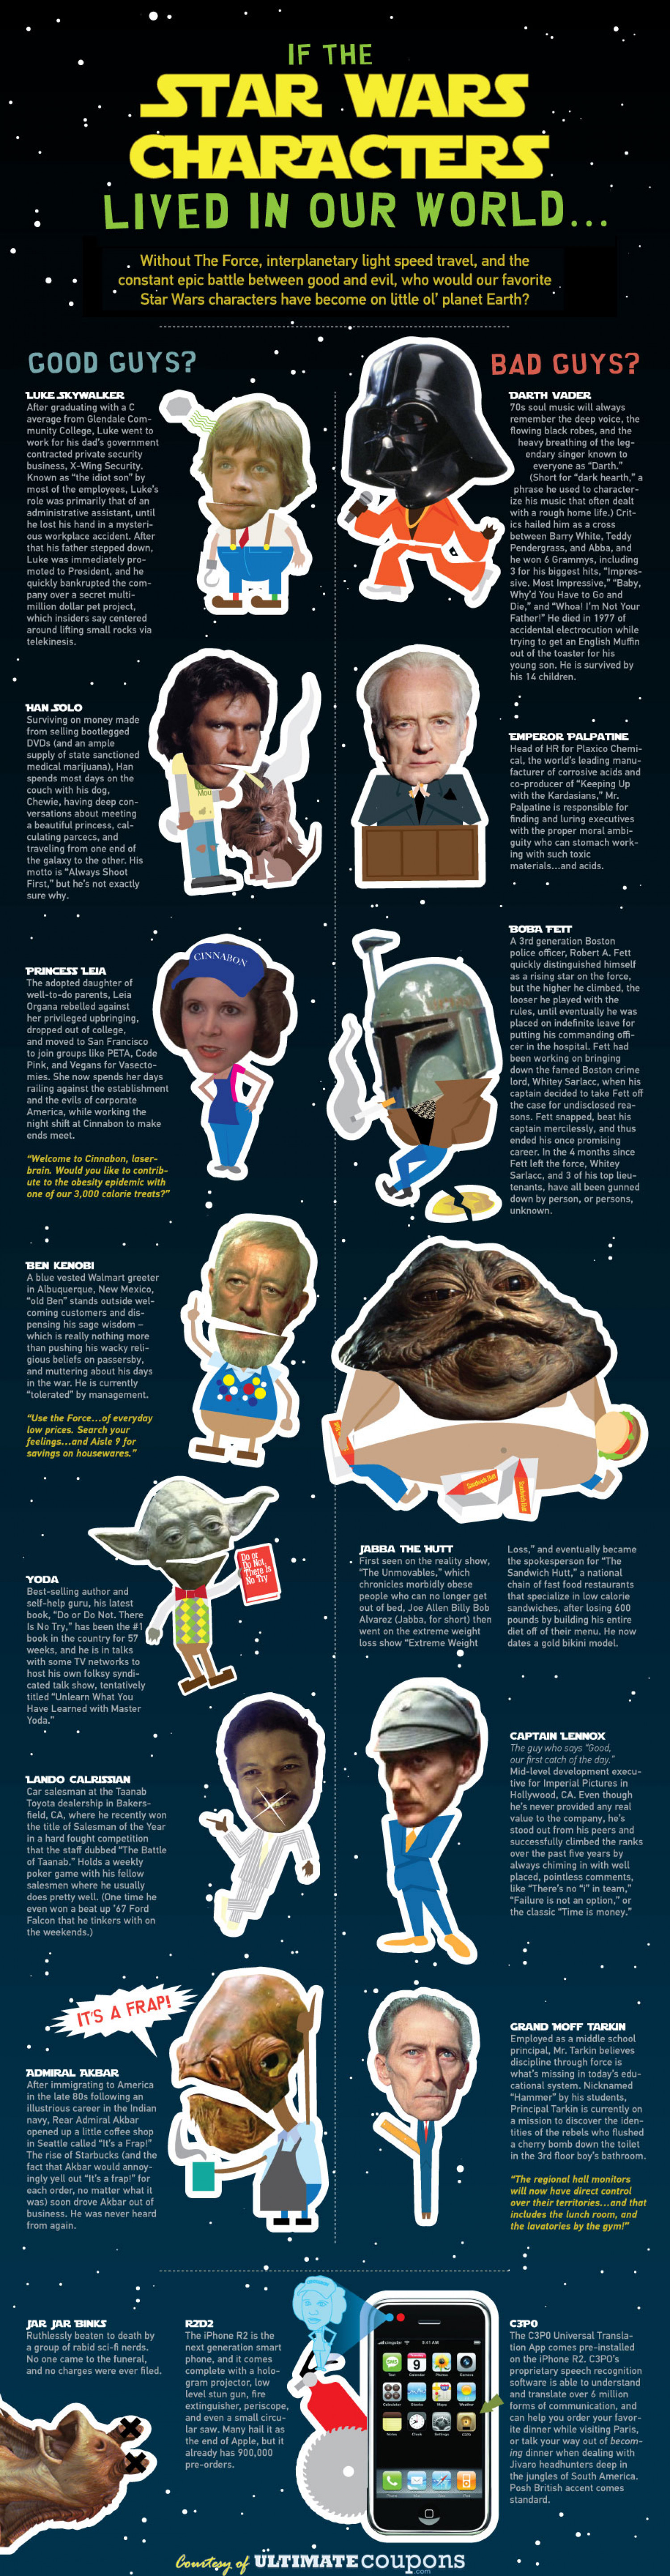 If STAR WARS Characters Lived in Our World Infographic